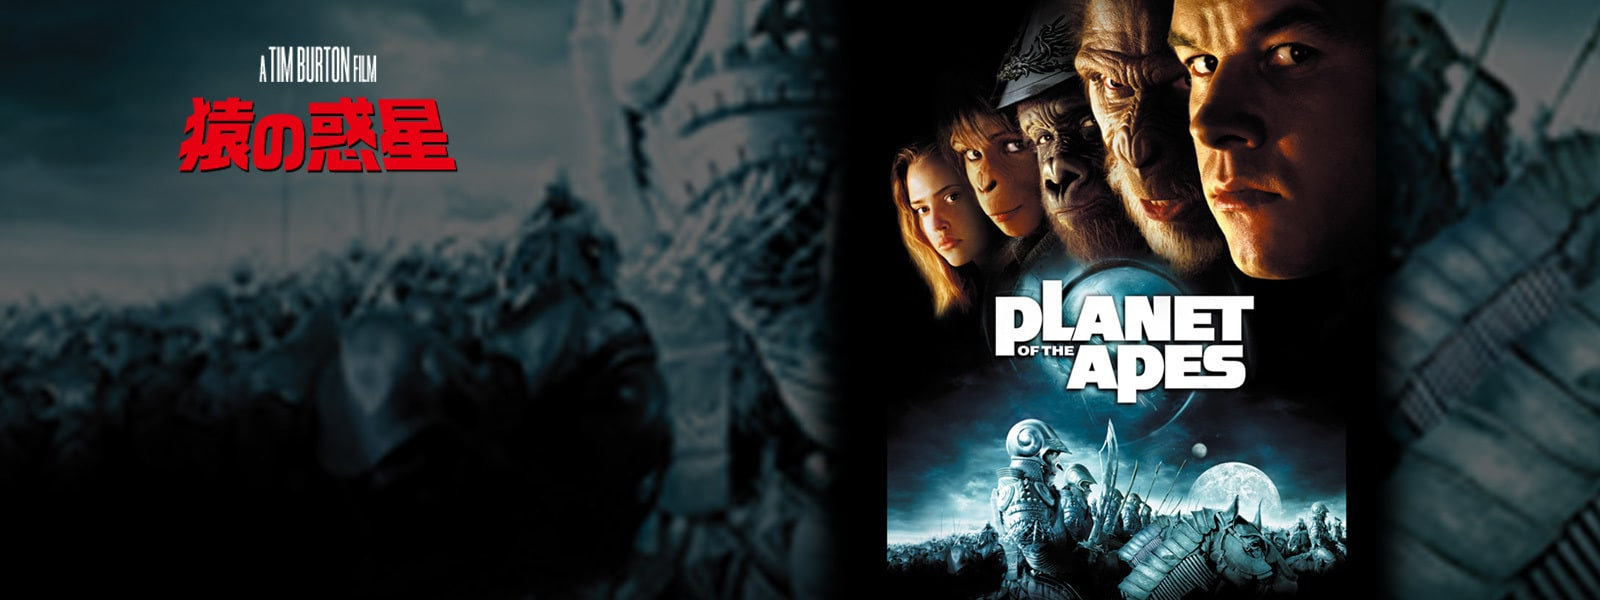 PLANET OF THE APES/猿の惑星 Planet of the Apes (2001) Hero